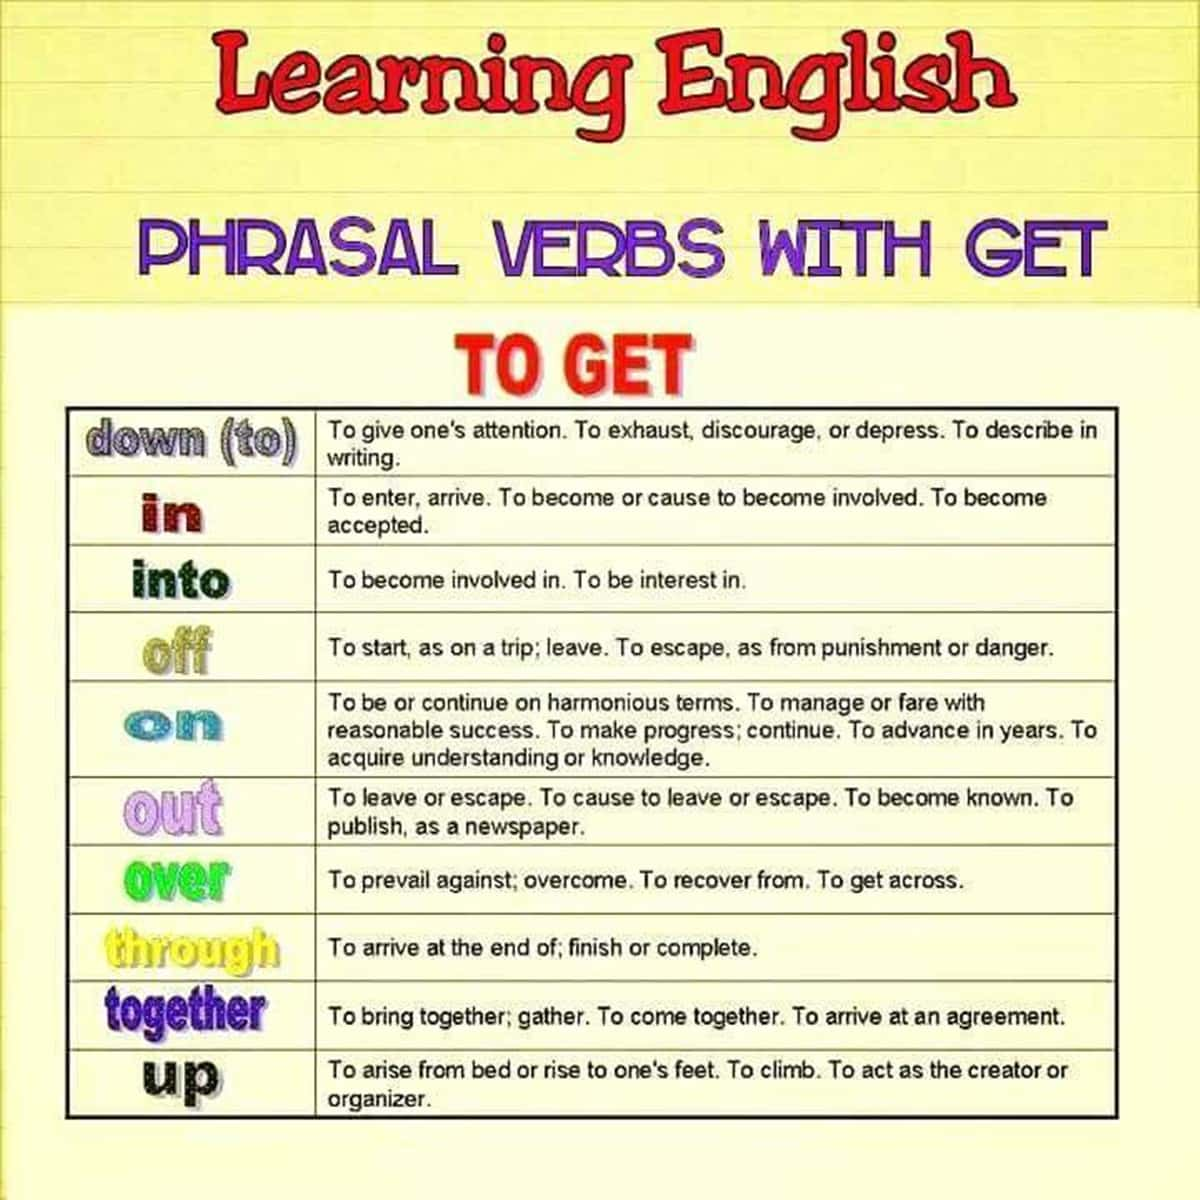 Commonly Used Phrasal Verbs With Get In English With